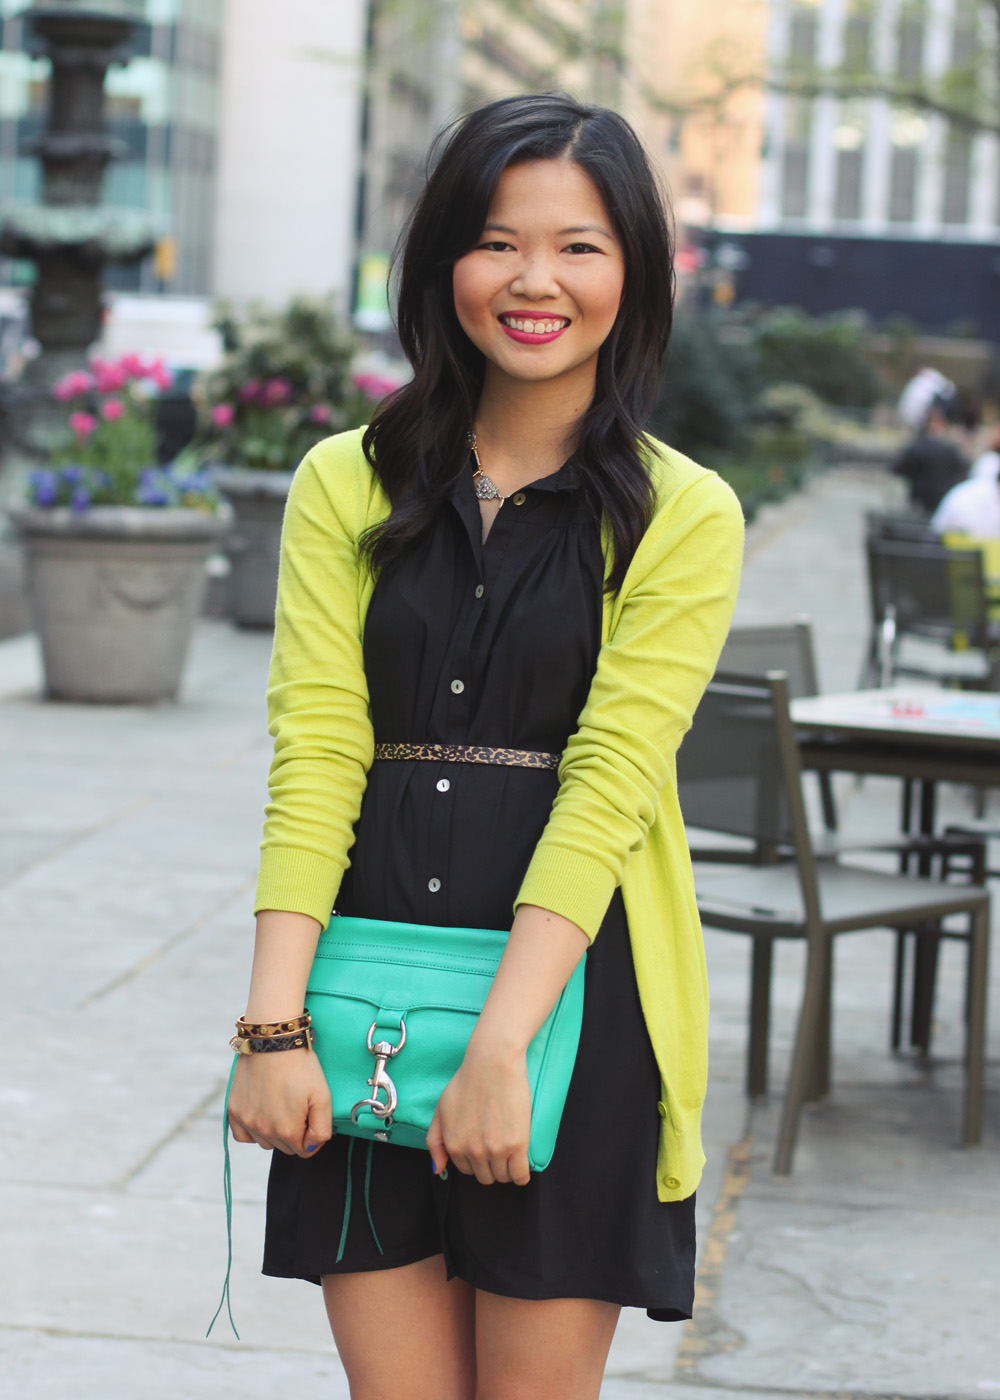 Skirt The Rules Blog; NYC fashion blogger; style blog; spring outfit photos; black and neon outfit; Tobi black button up dress; Gap neon green cardigan; Sequin black and gold necklace; H&M leopard skinny belt; Rebecca Minkoff turquoise MAC clutch; C. Wonder leopard skinny cuff; Juicy Couture pave pyramid bracelet; Sam Edelman black and brown wedges; Essie's Butler Please